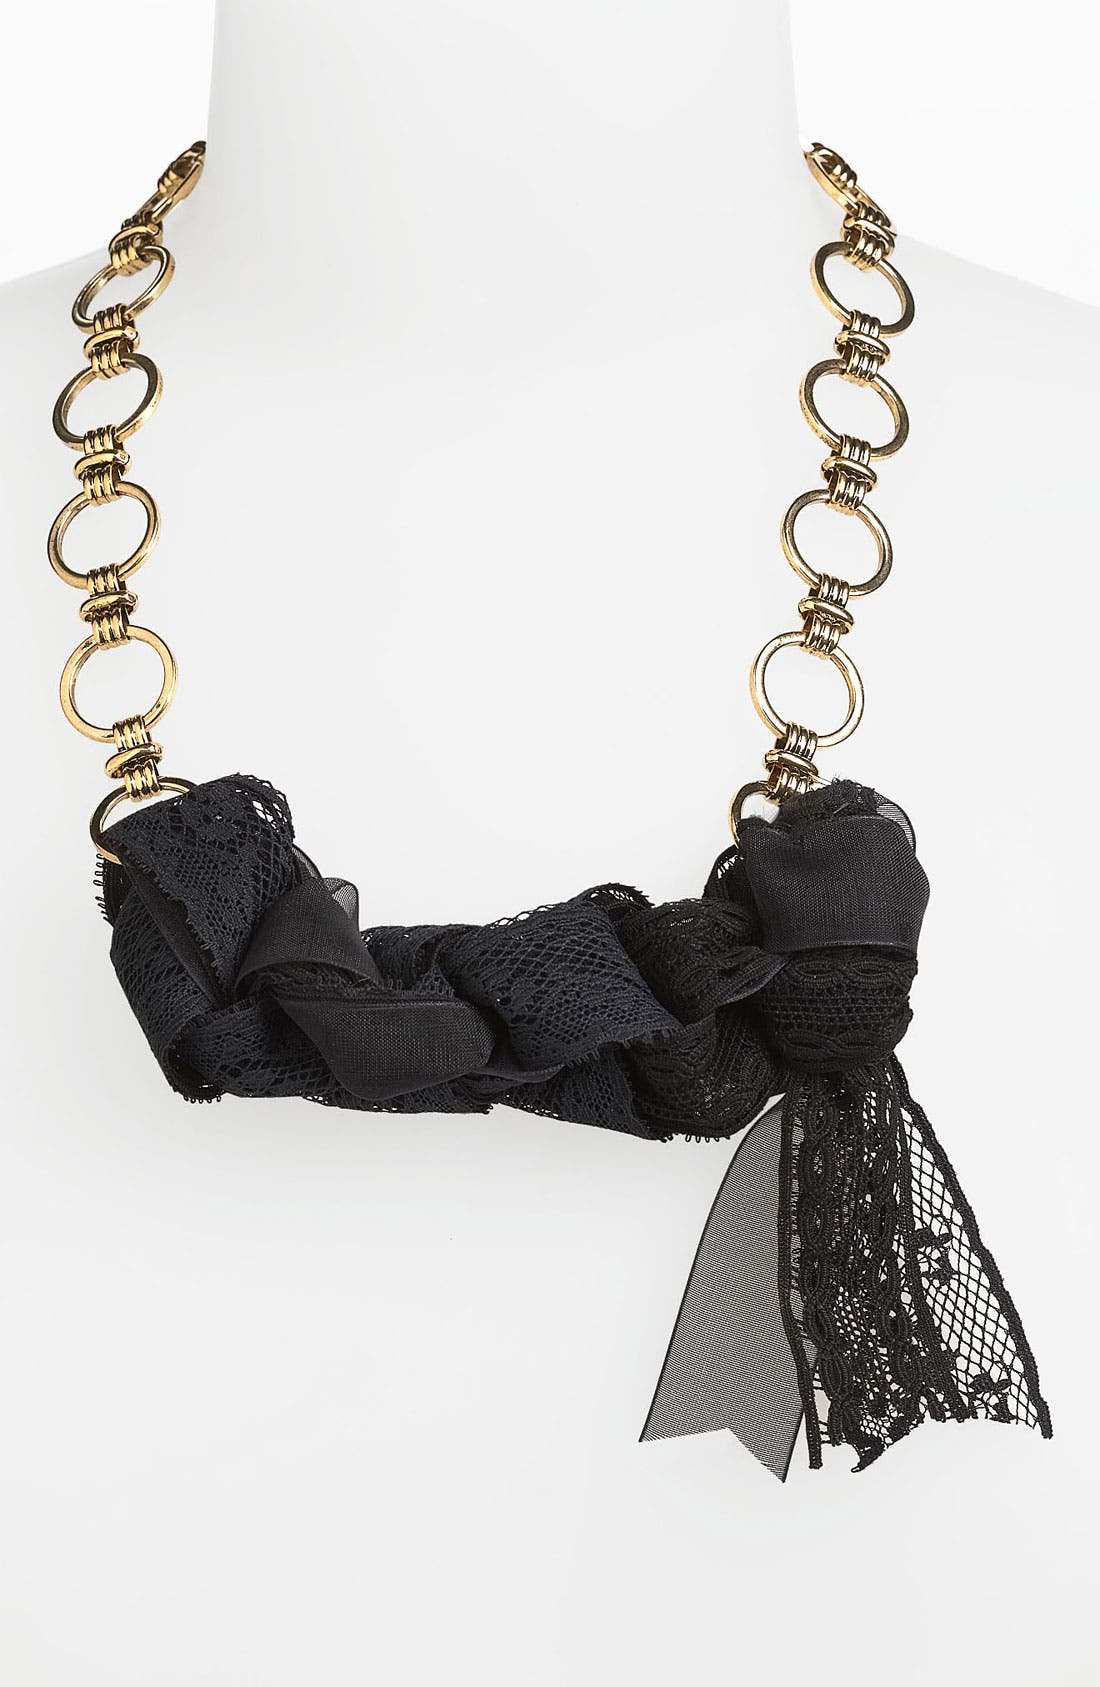 Main Image - Bonnie Jonas 'Lace & Chain' Necklace